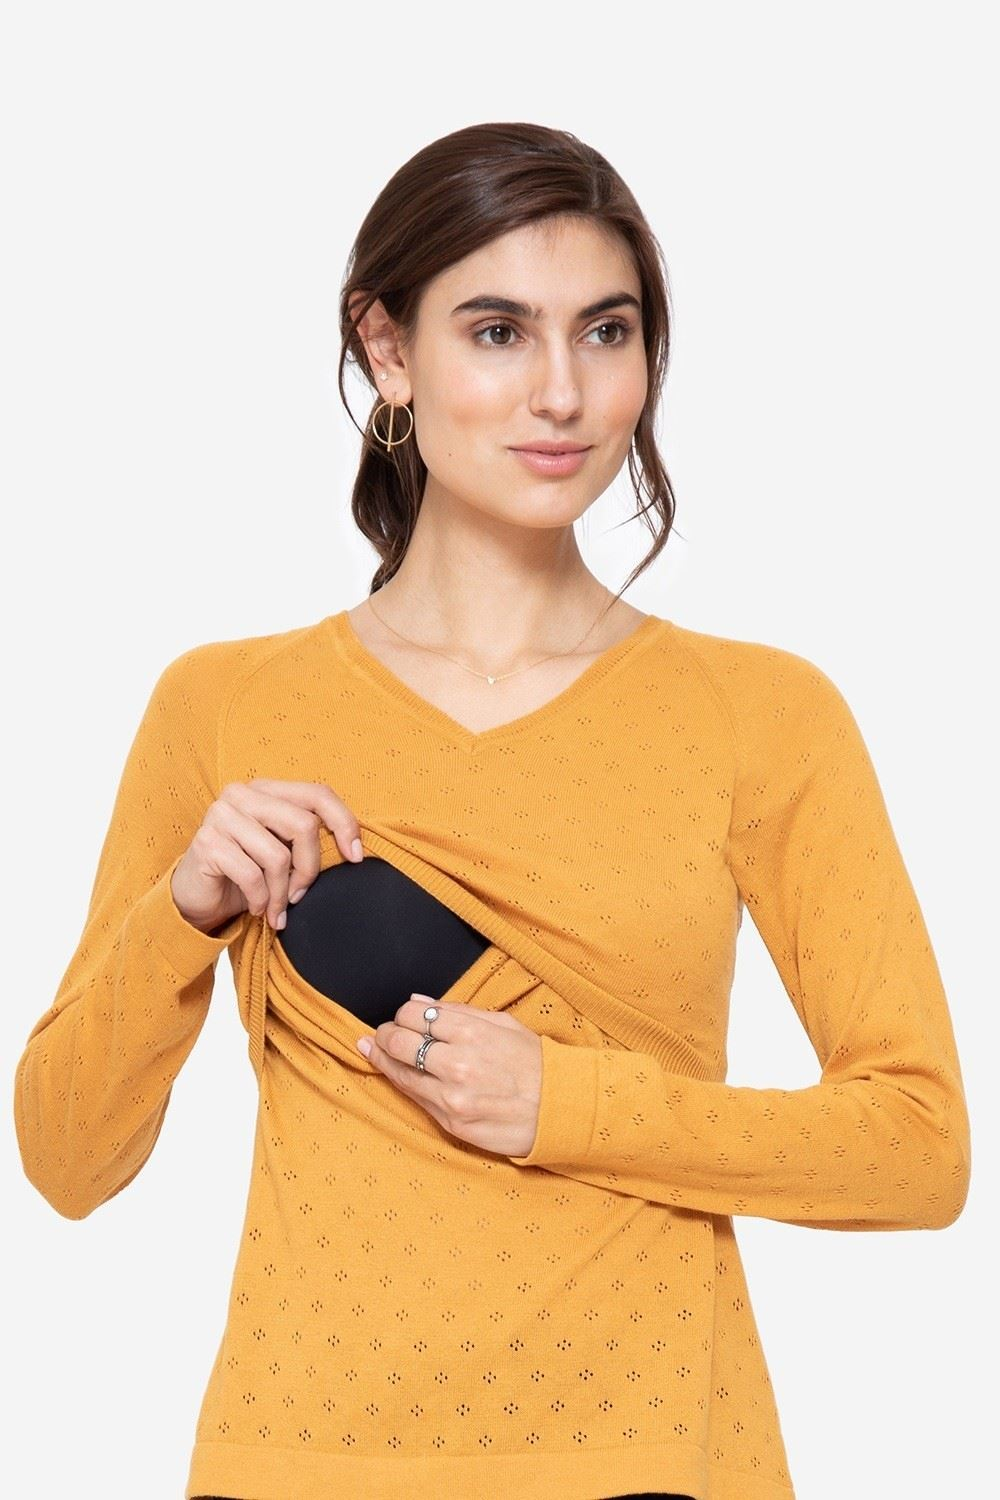 Yellow V-neck nursing jumper in organic cotton, access for breastfeeding